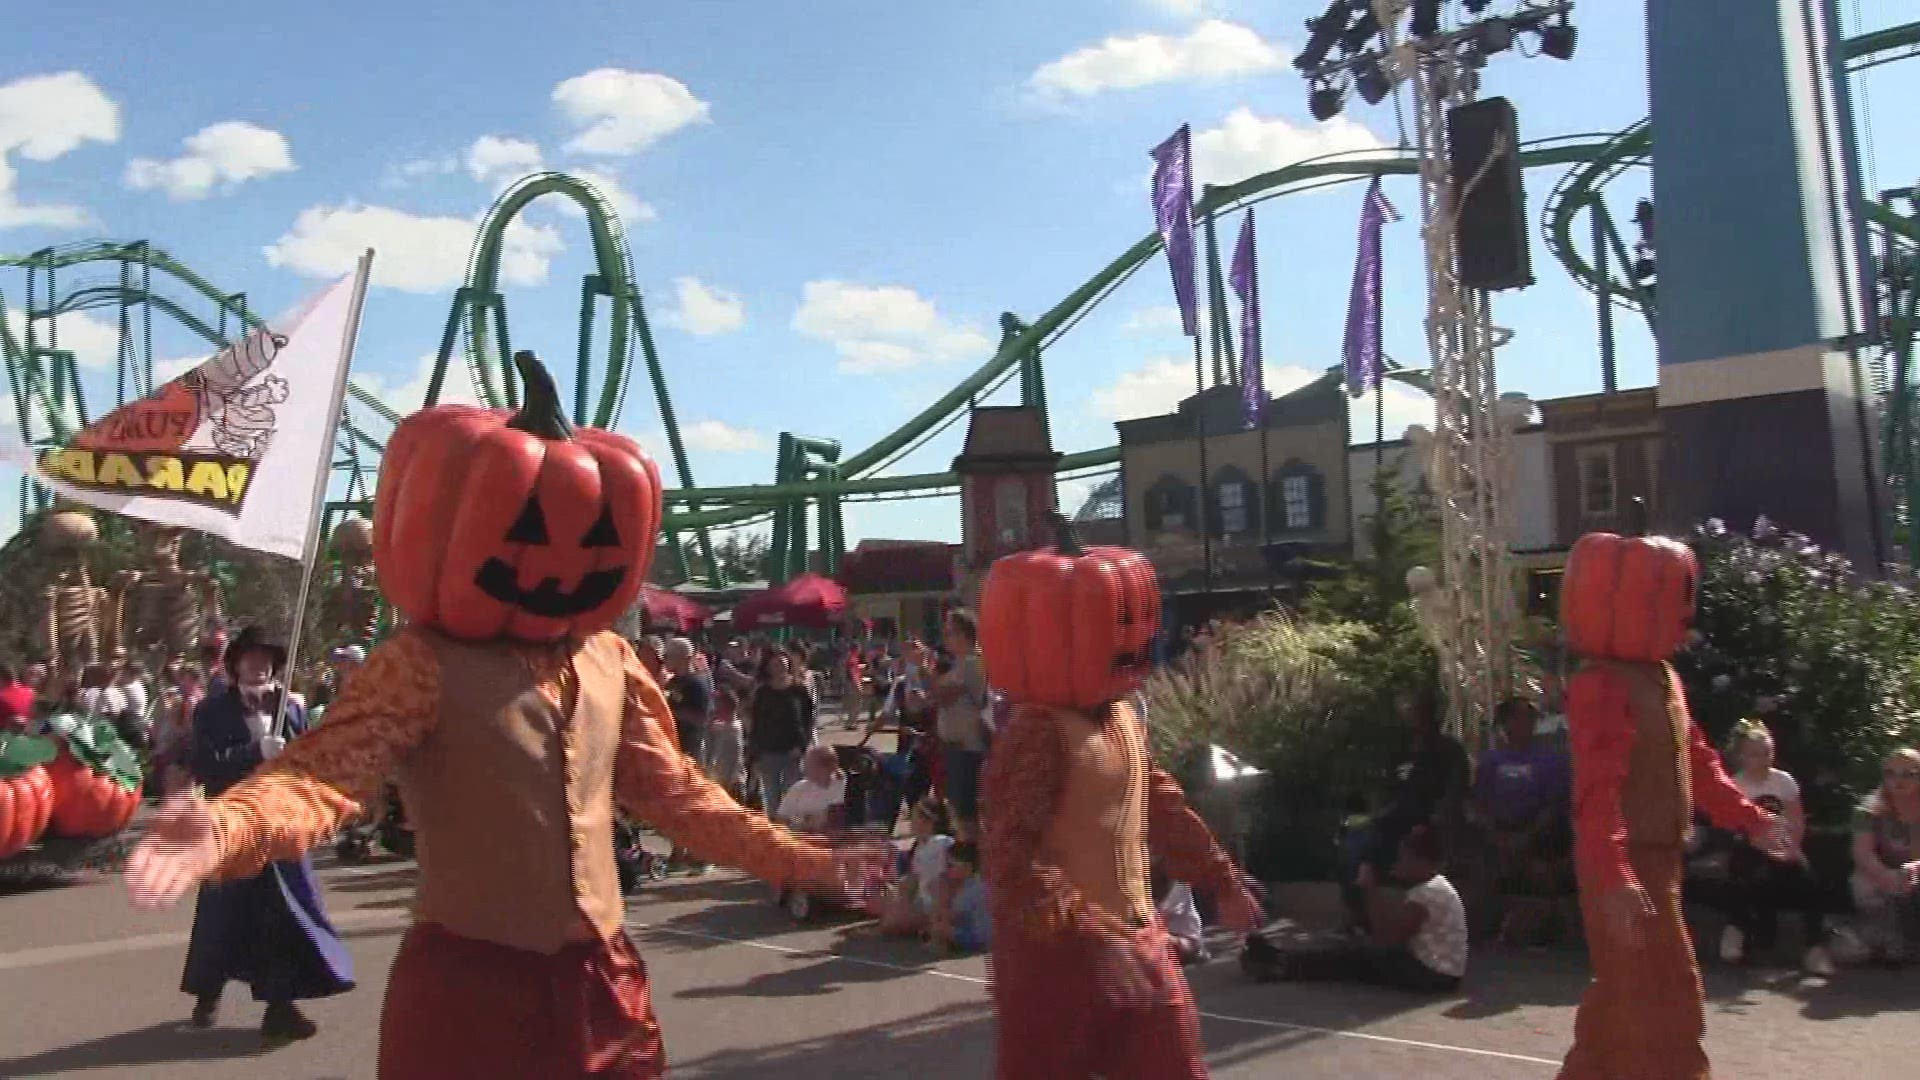 Childrens Halloween Events 2020 Tyler Texas What is replacing HalloWeekends at Cedar Point? New event planned